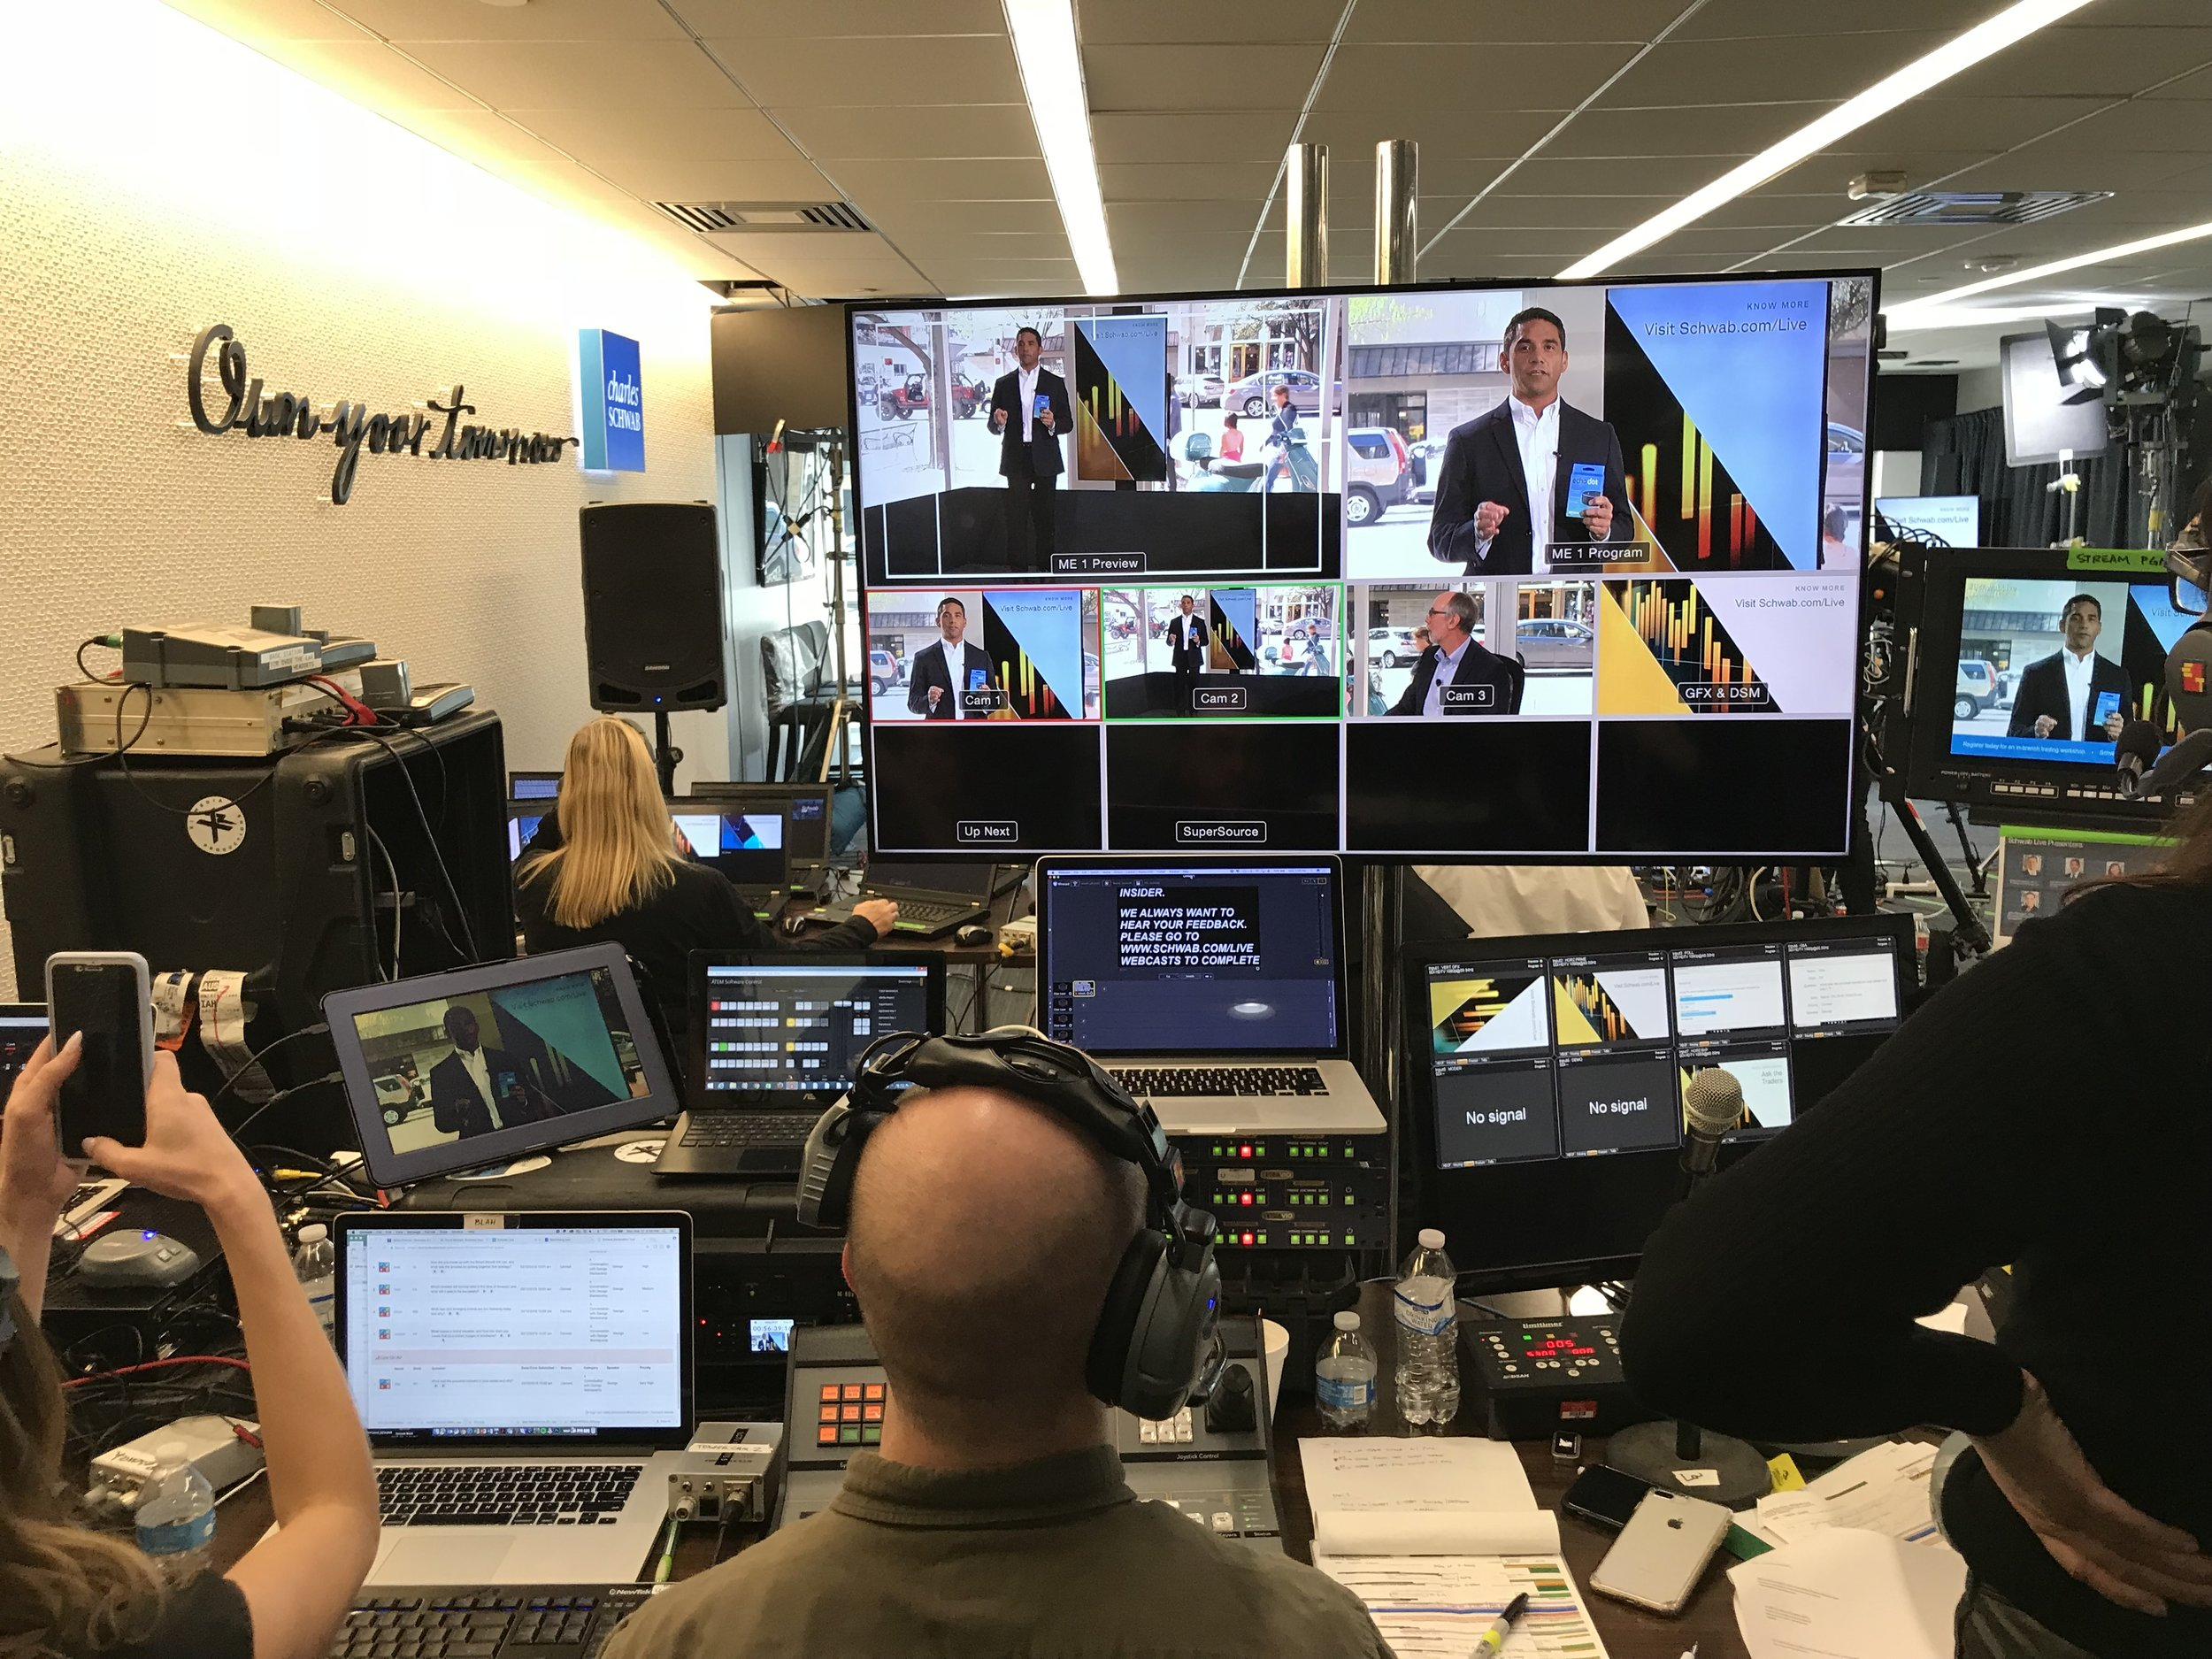 Charles Schwab video village built from scratch in their downtown Austin offices.